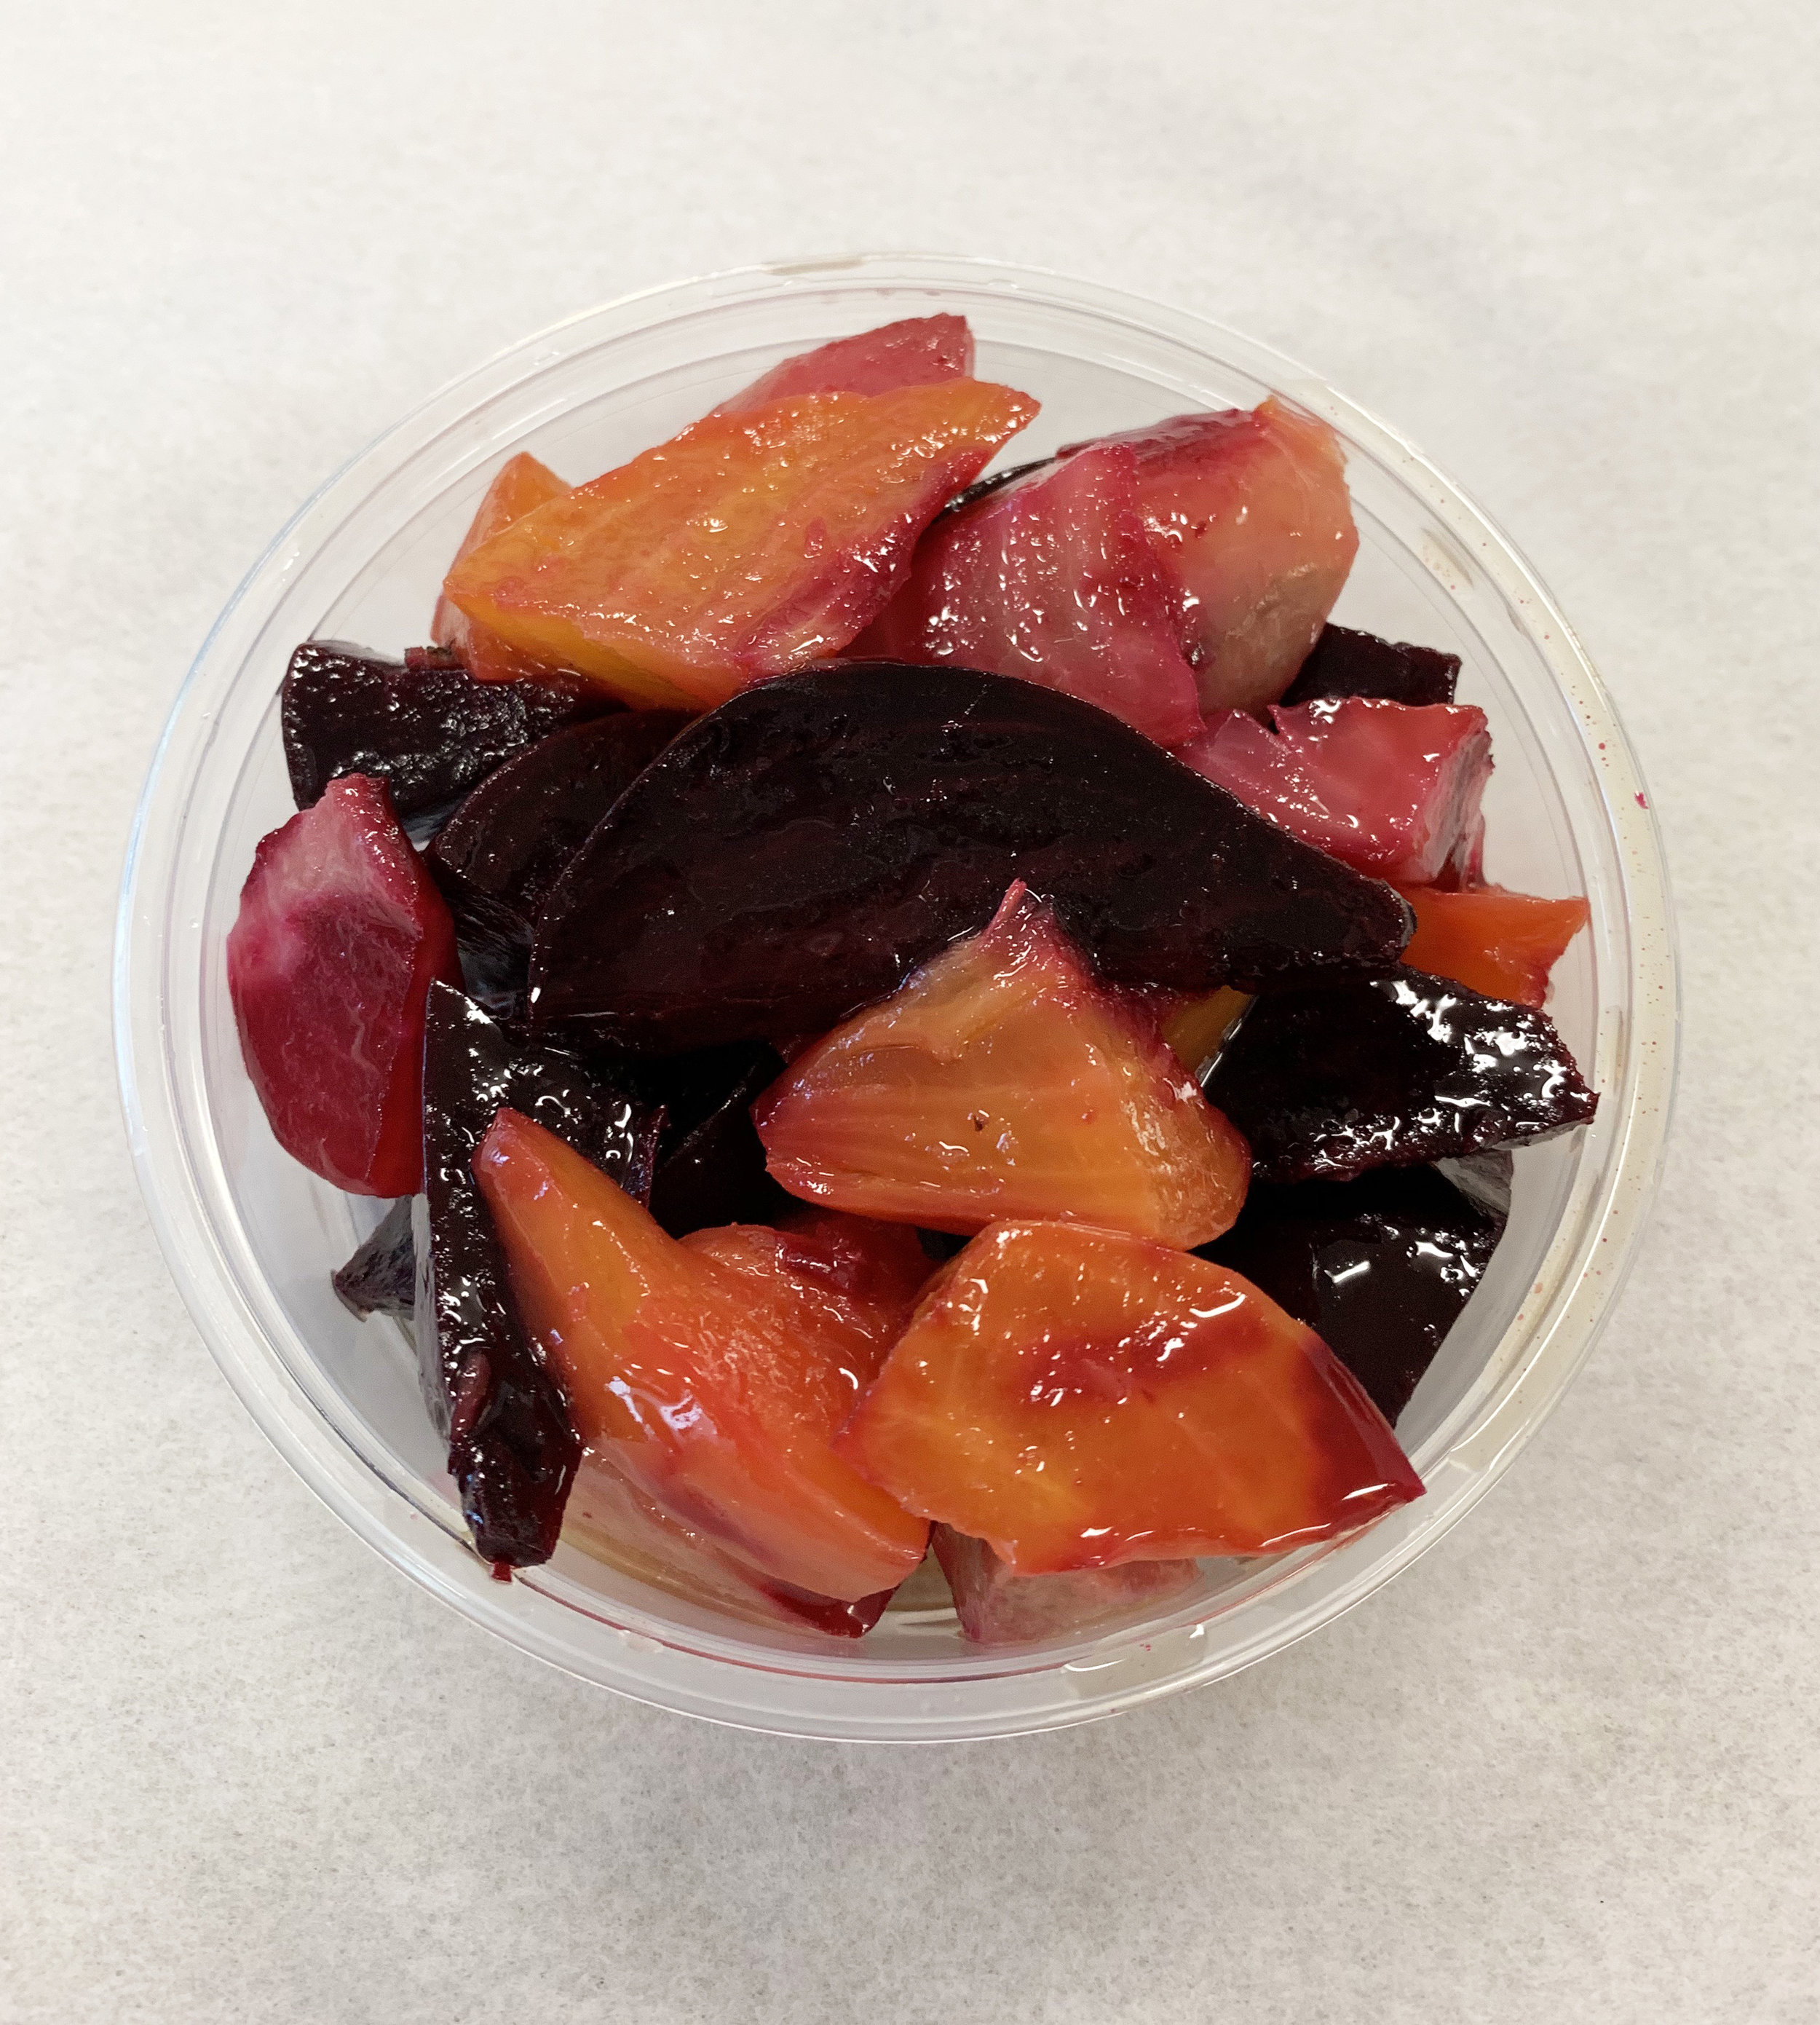 Steamed multicolored beets with olive oil and salt.